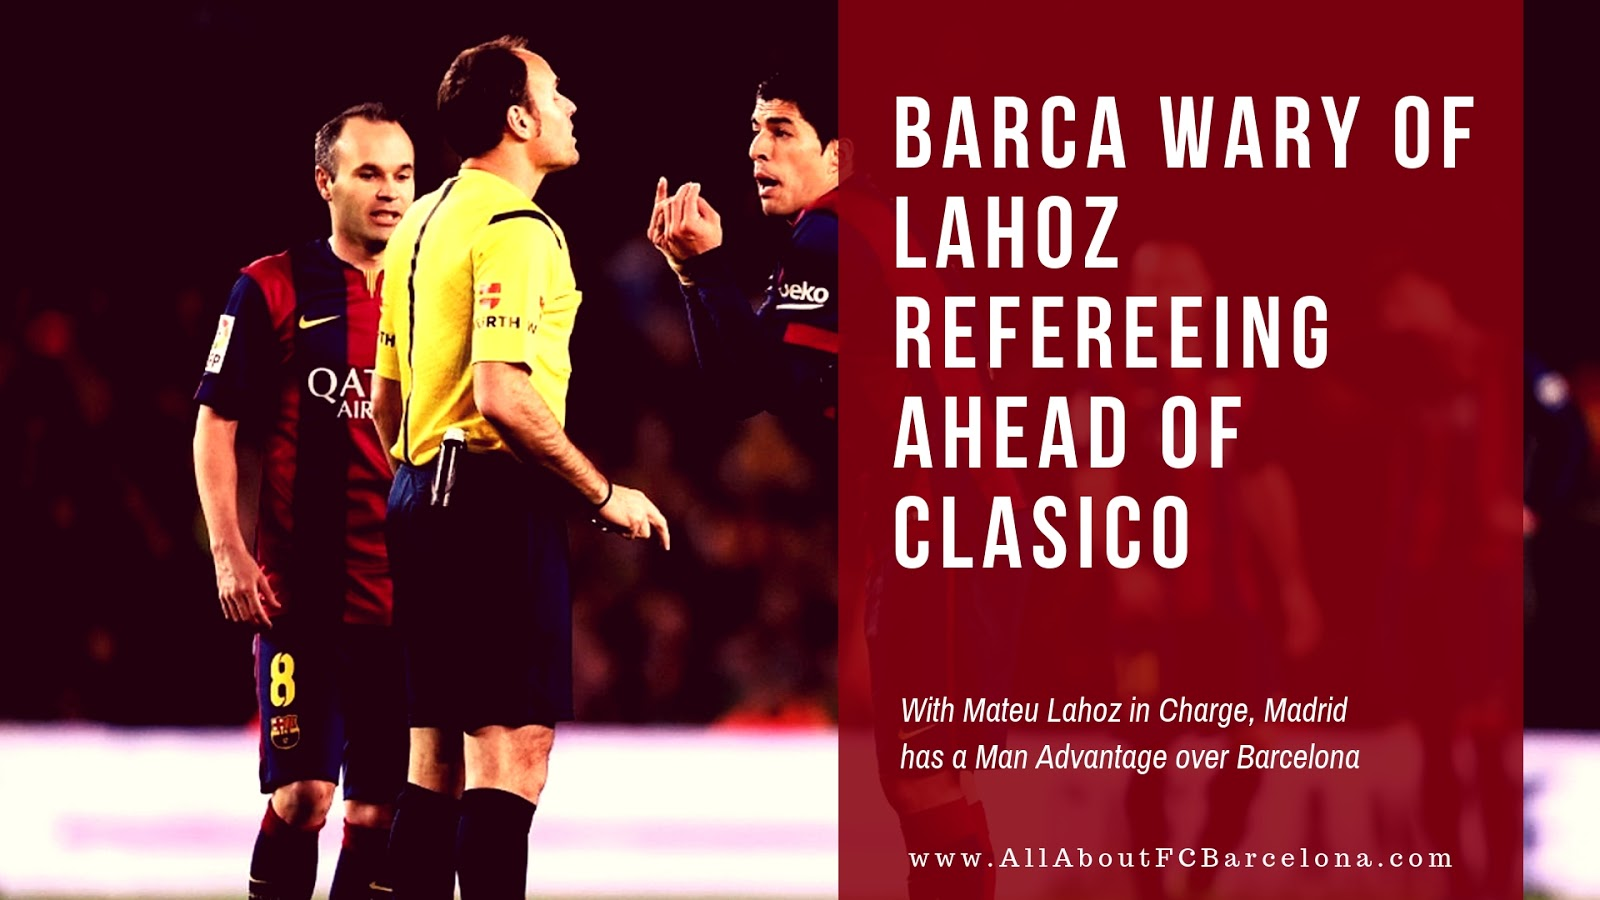 With Mateu Lahoz in Charge, Madrid has a Man Advantage over Barcelona!